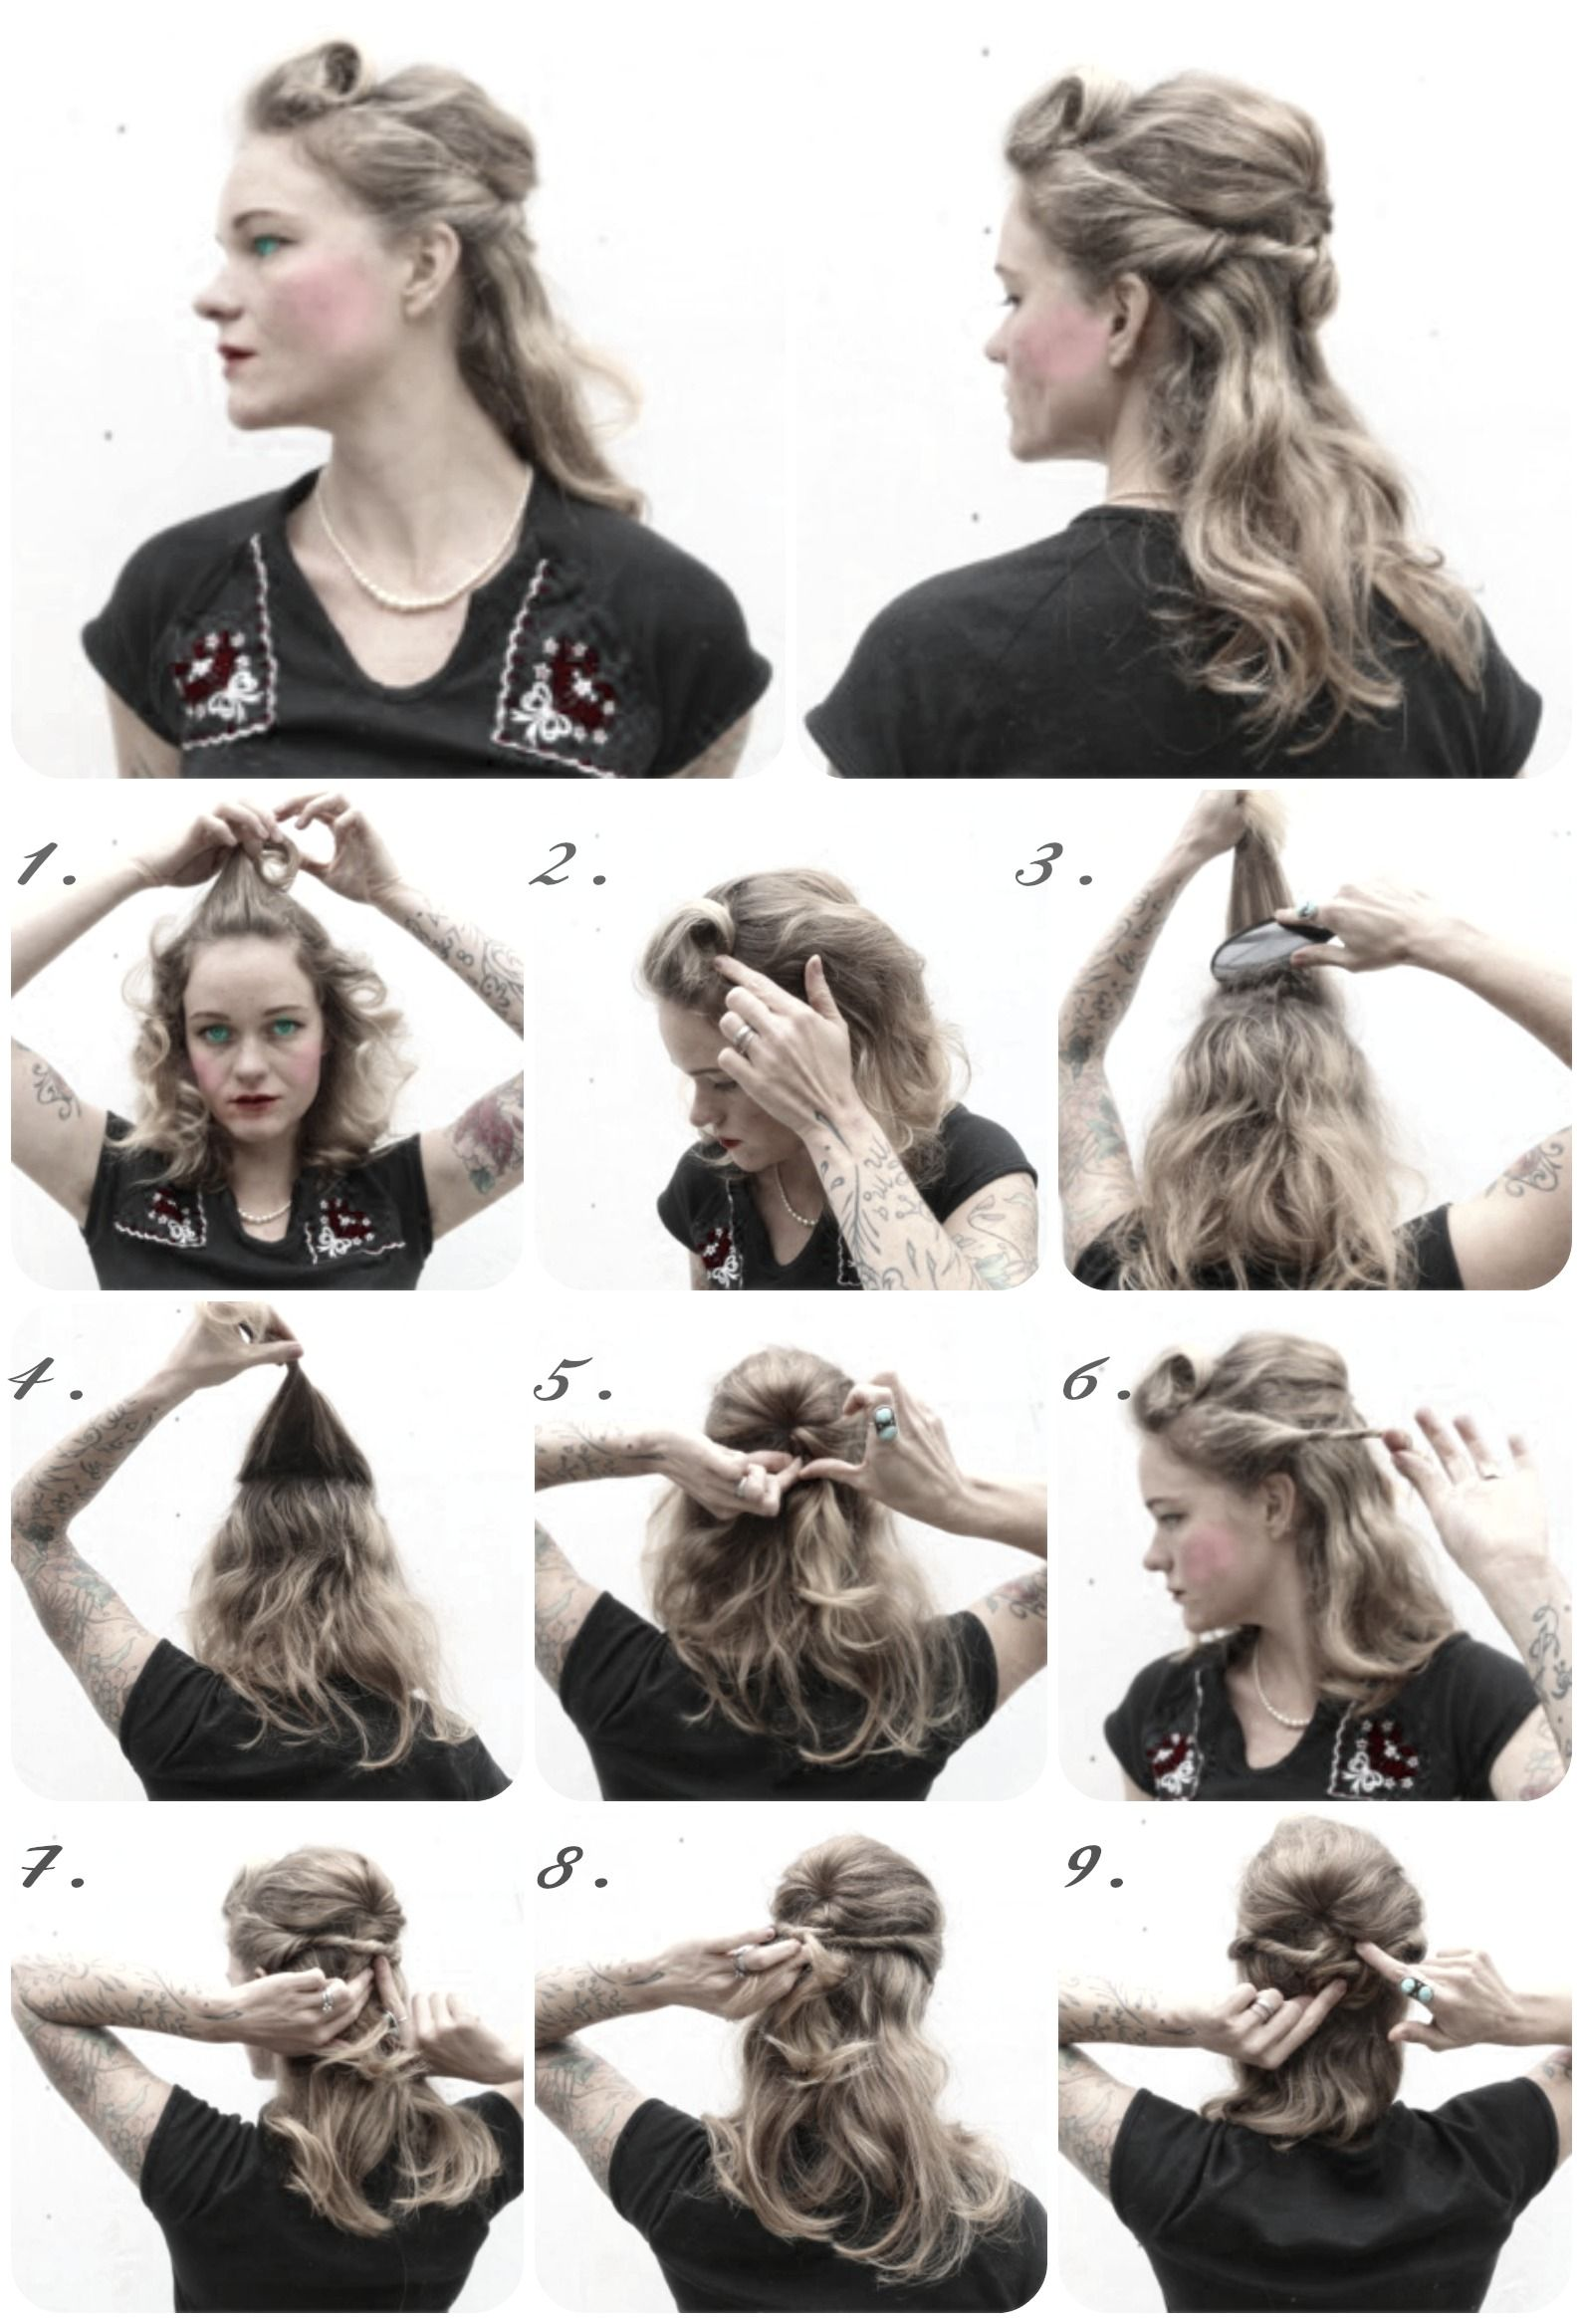 How To Hair Girl Victory Rolls Archives 1940s Hairstyles For Long Hair 1940s Hairstyles Retro Hairstyles